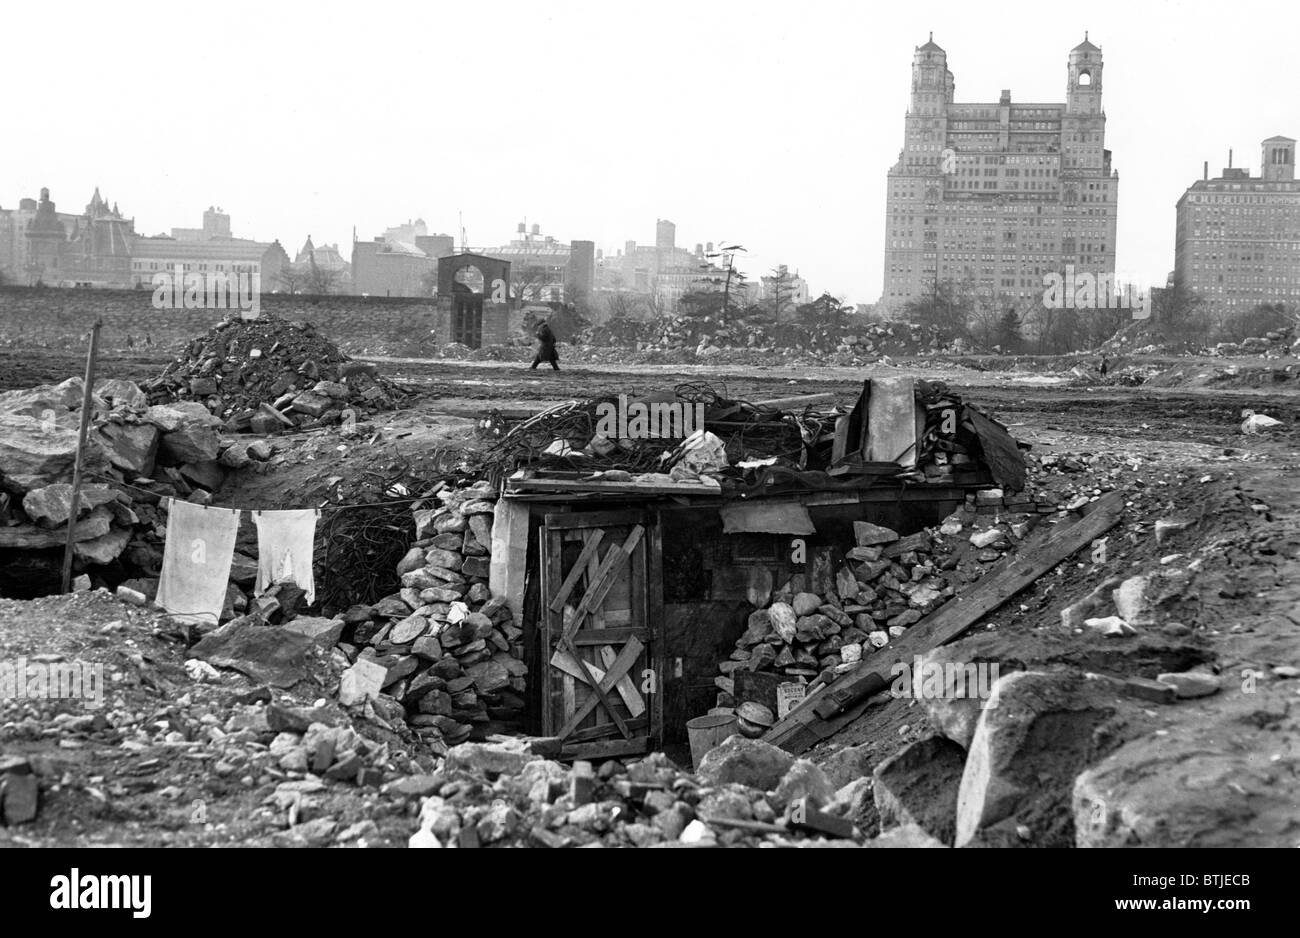 Great Depression, Shantytown on the site of the old Central Park Reservoir, New York City, N.Y., December 1931 - Stock Image